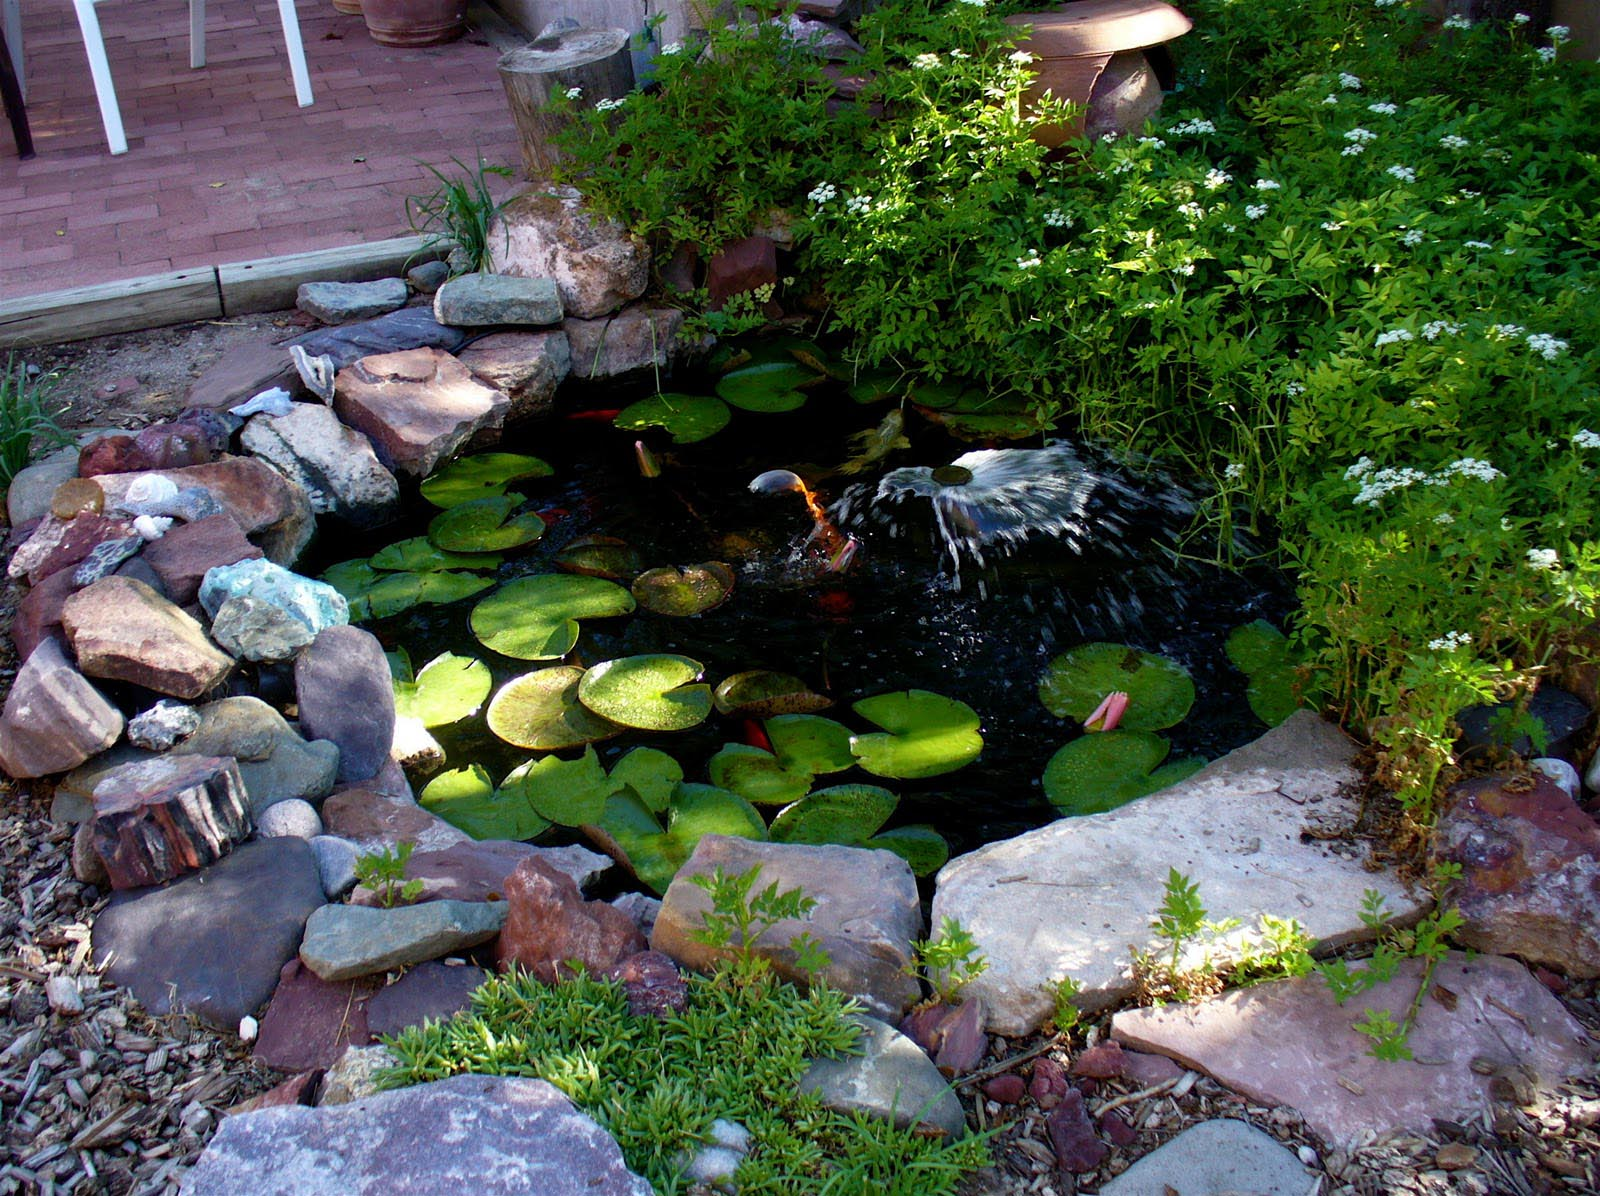 Garden fish pond ideas backyard design ideas for Backyard koi pond ideas